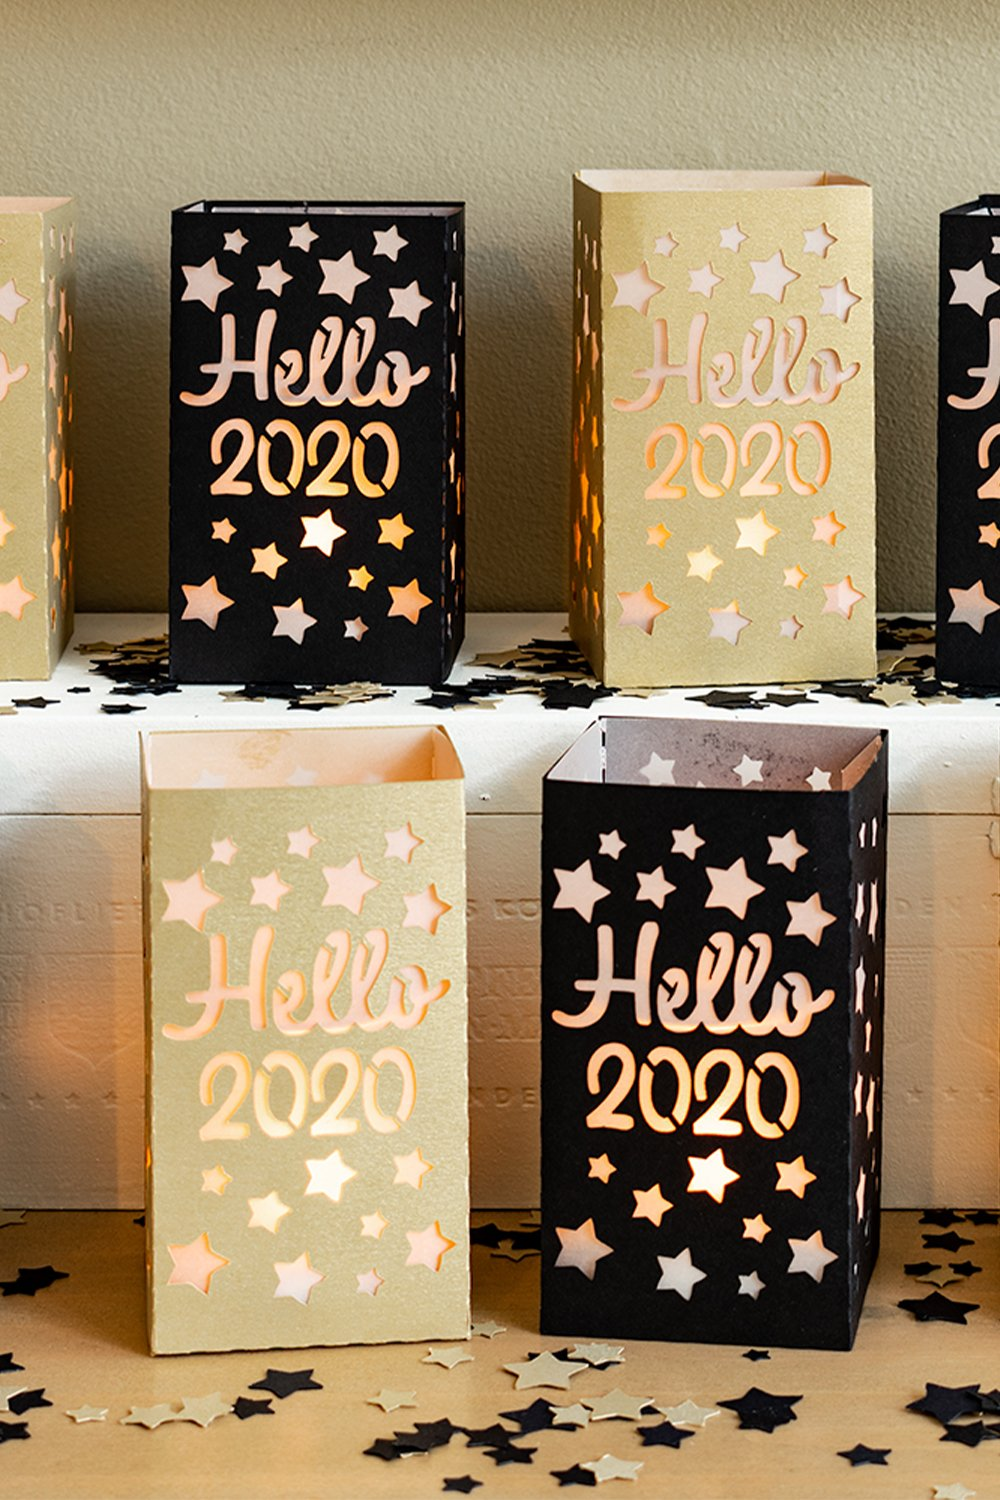 New Year's Decorations: DIY Paper Lantern Craft With Free ...